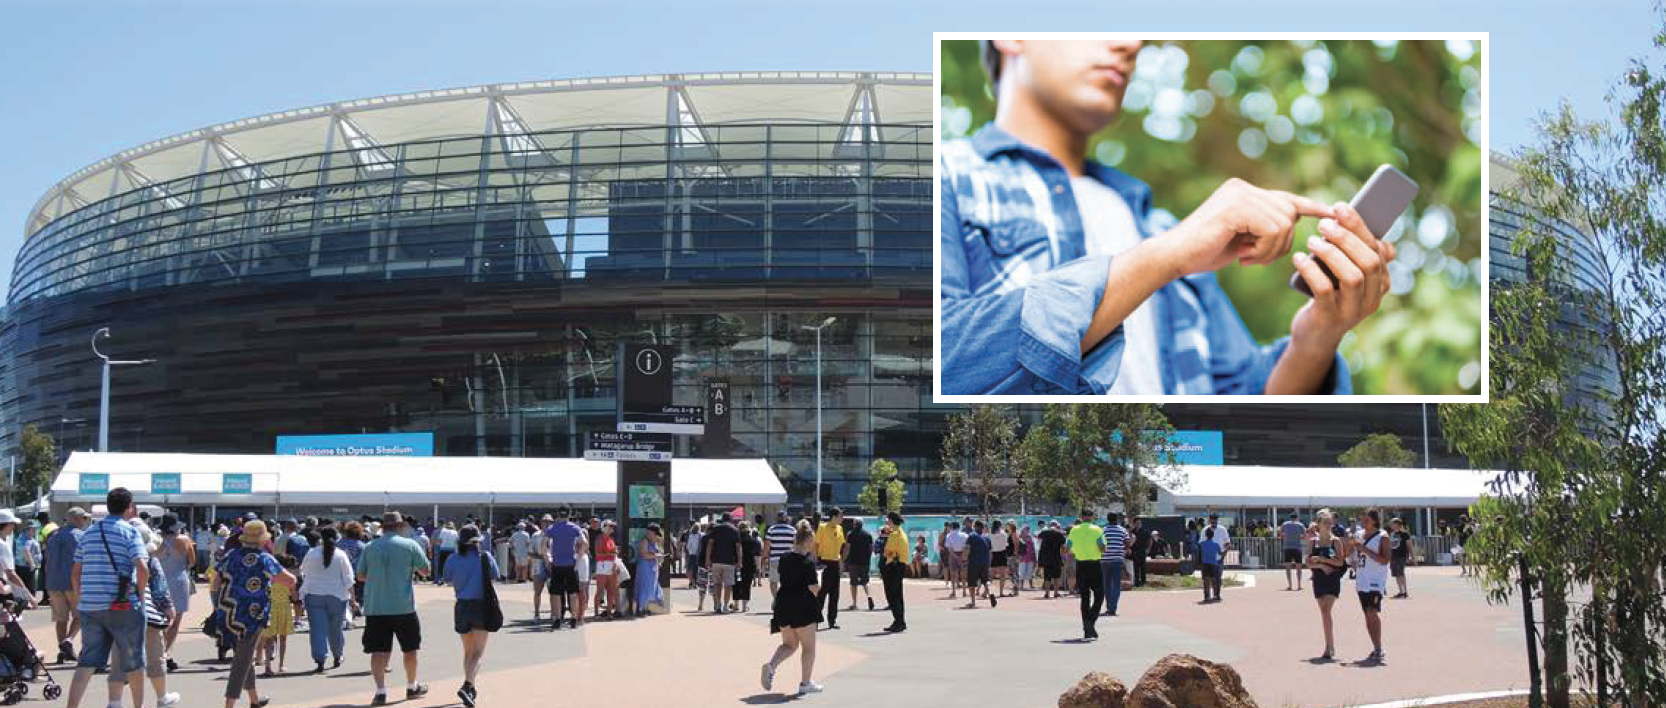 The Perth Stadium walking trail will feature some fun augmented reality experiences.